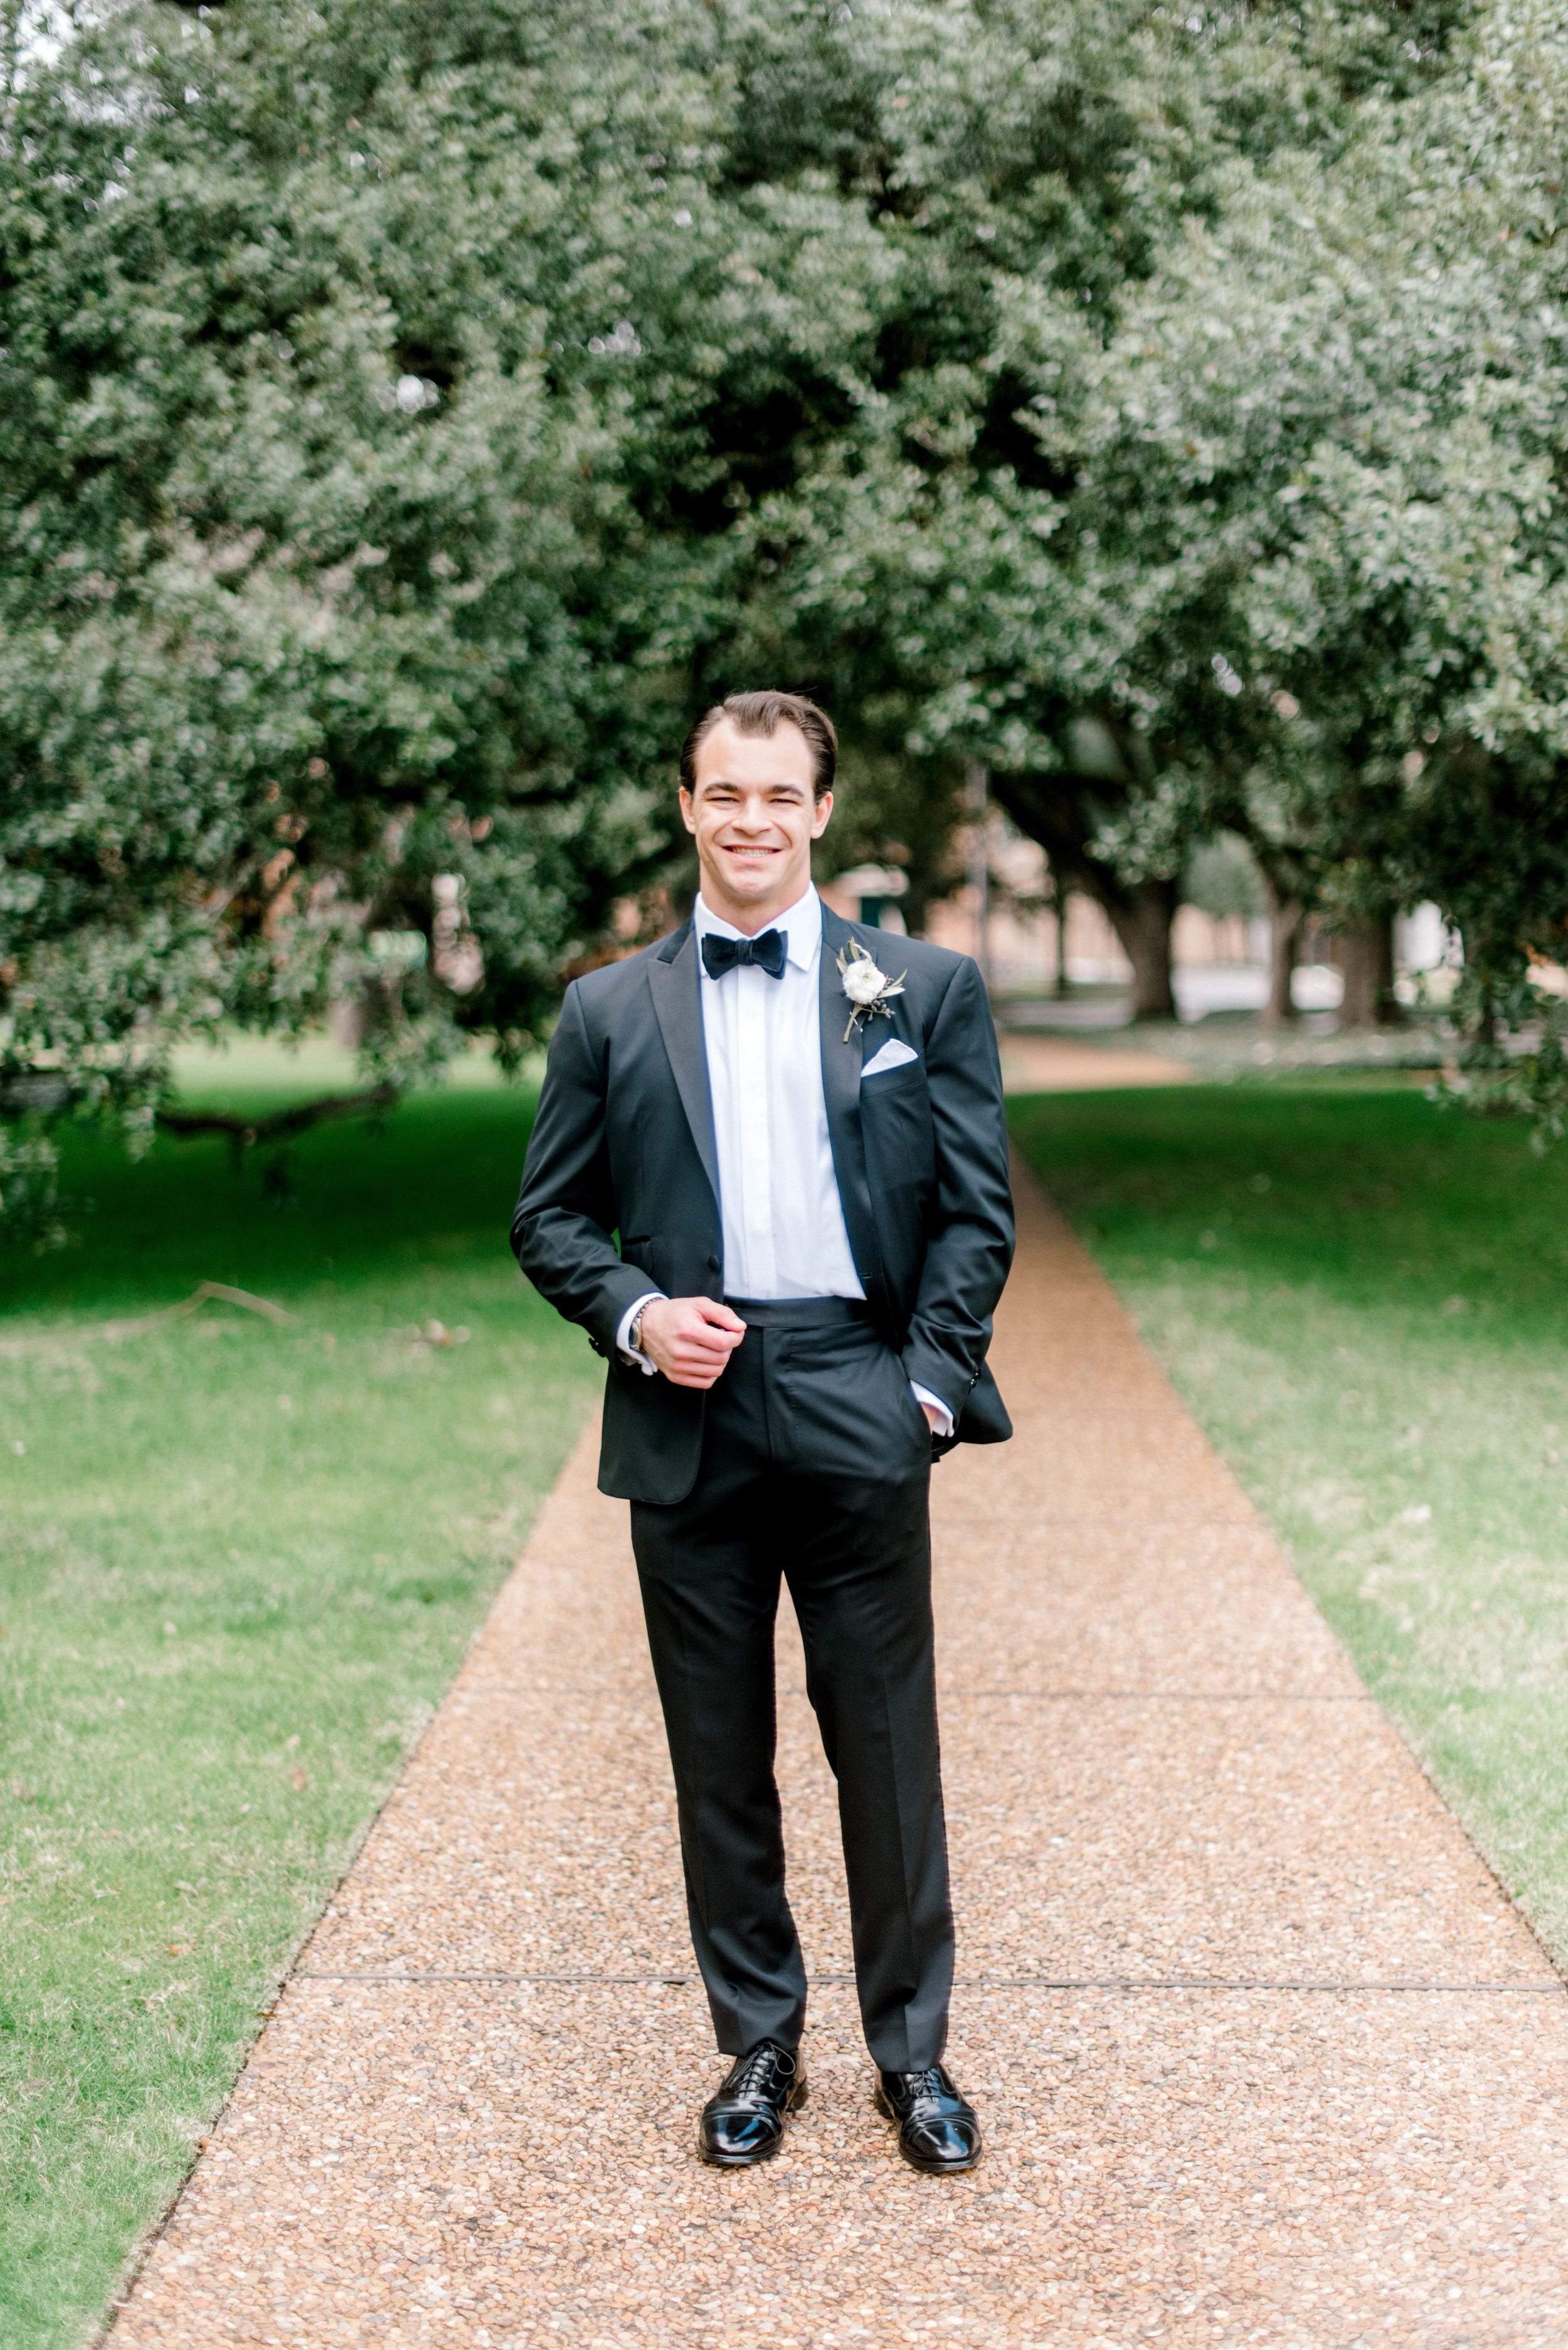 wedding-details-photography-dana-fernandez-groom-tux-bowtie-black-boutonniere-floral-greenery-by-maxit-flower-design-houston-texas